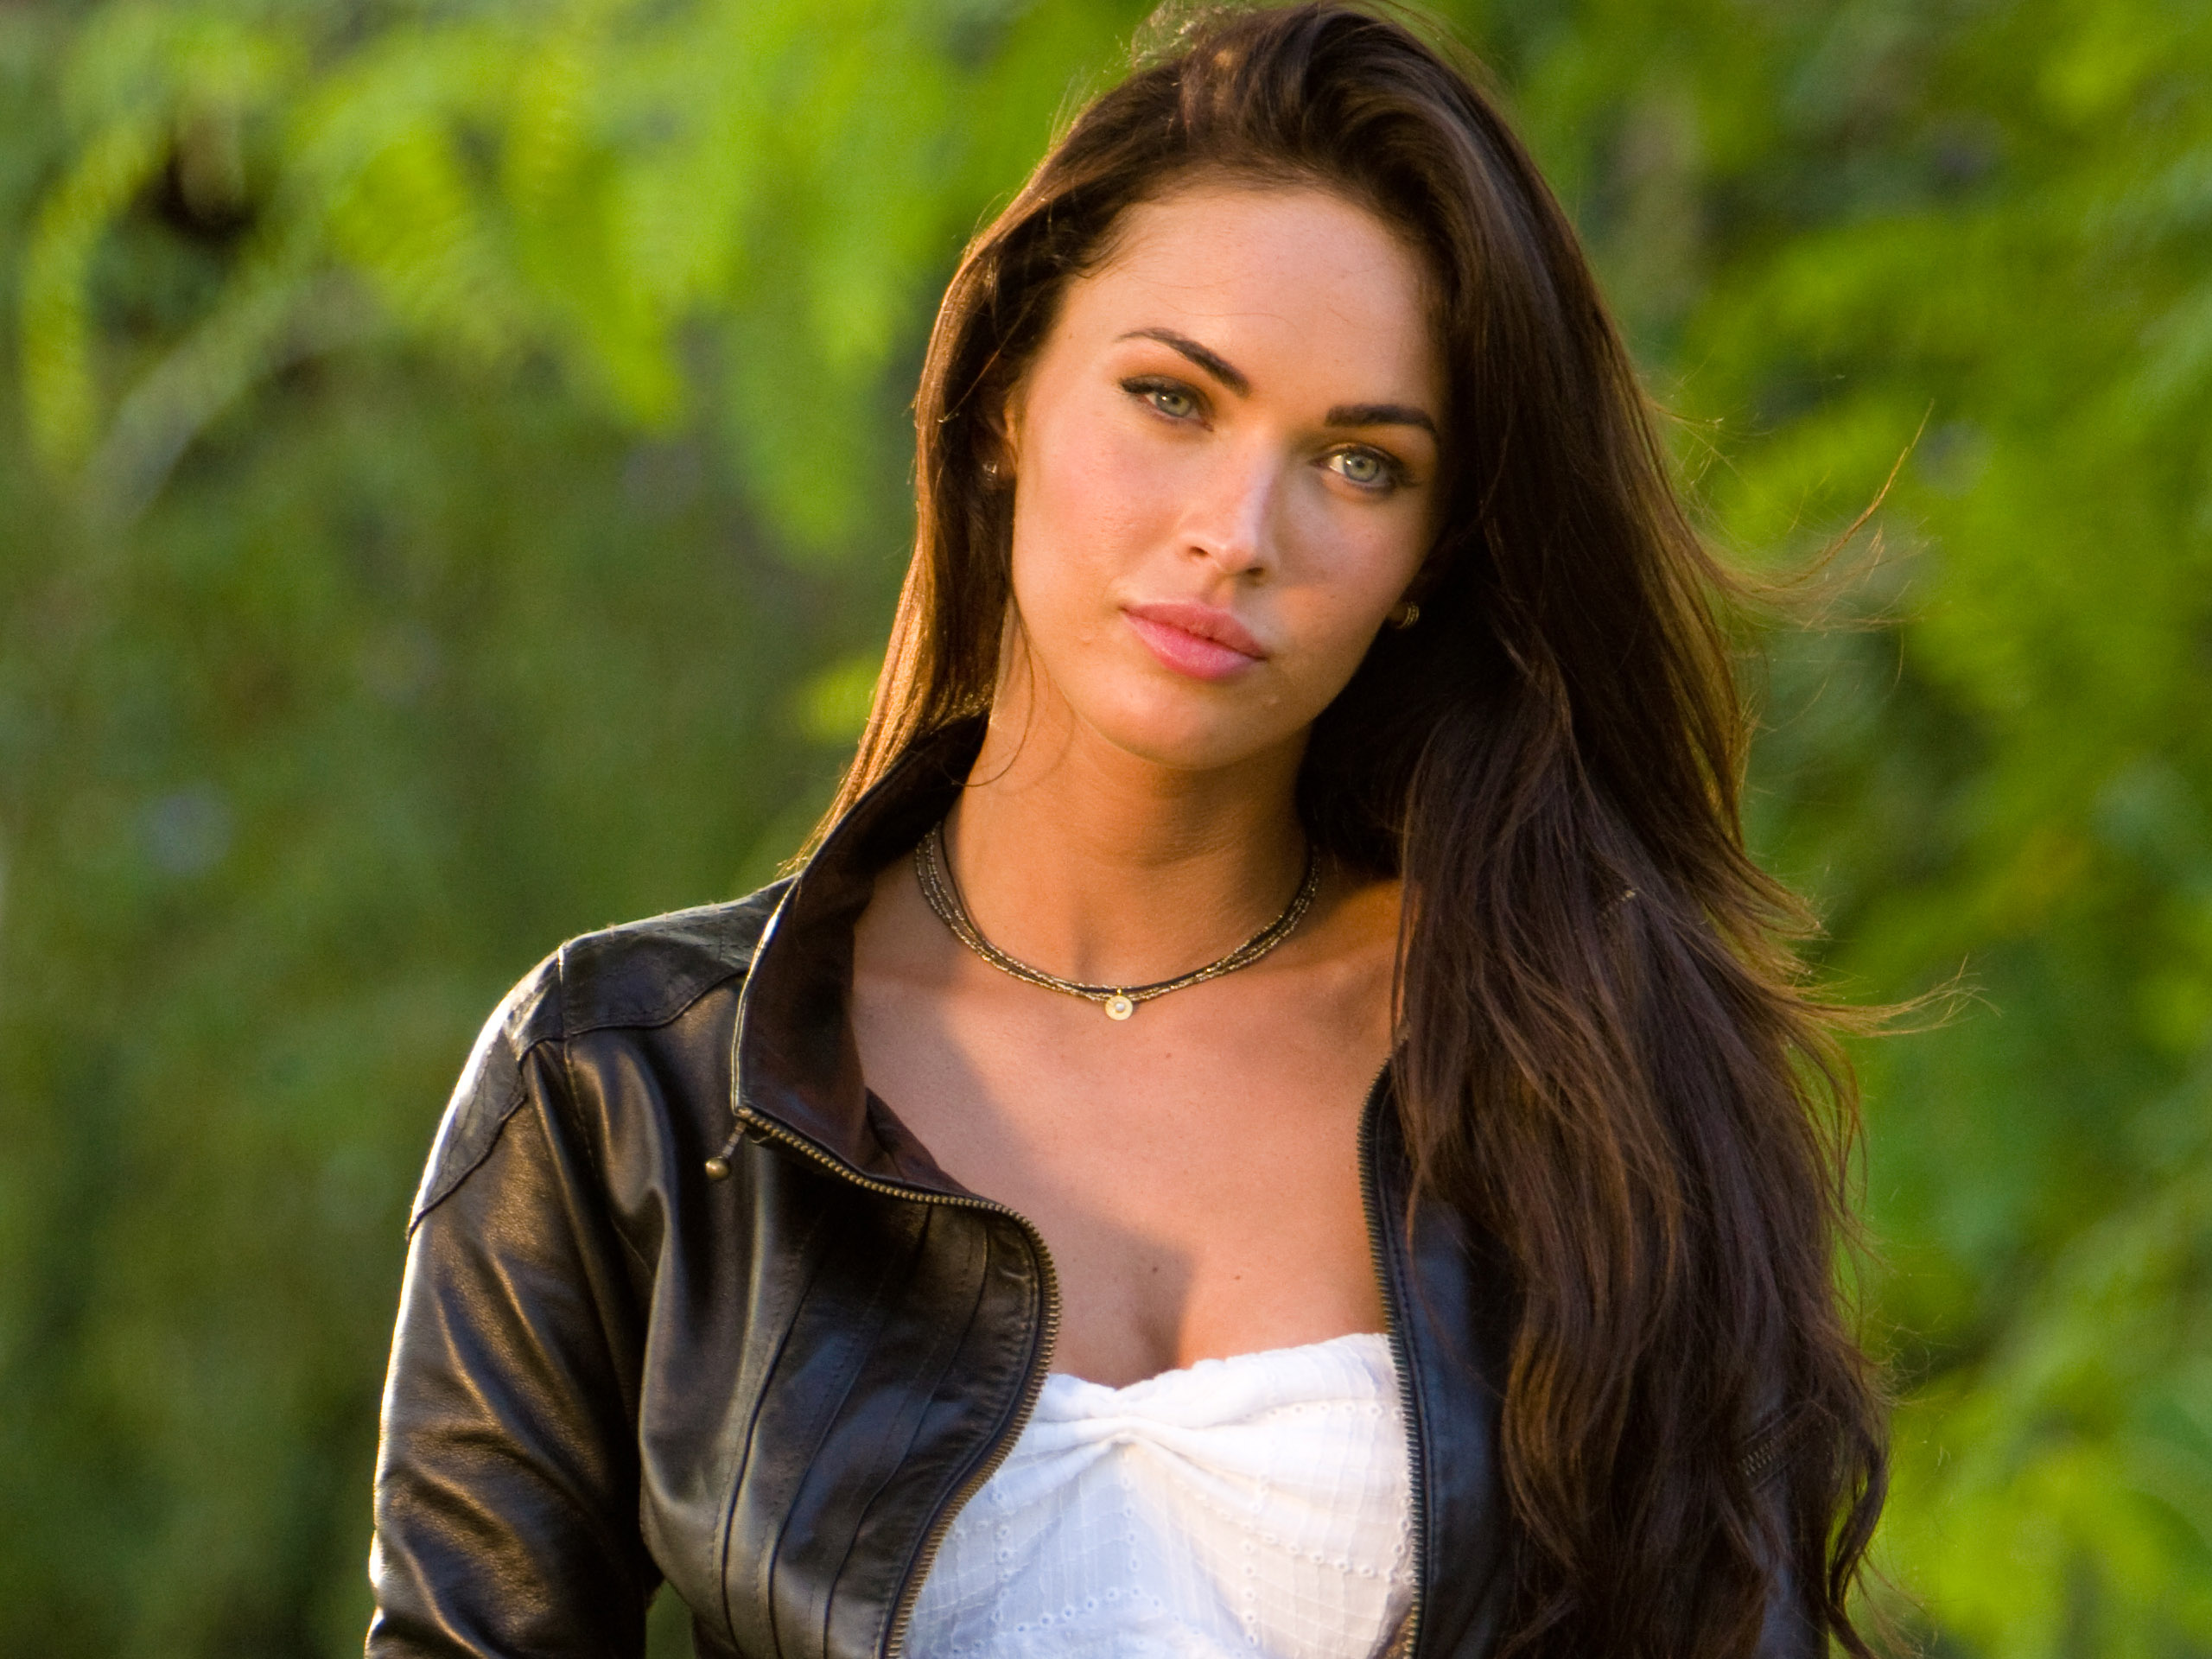 celebritystyle images megan fox hd wallpaper and background photos